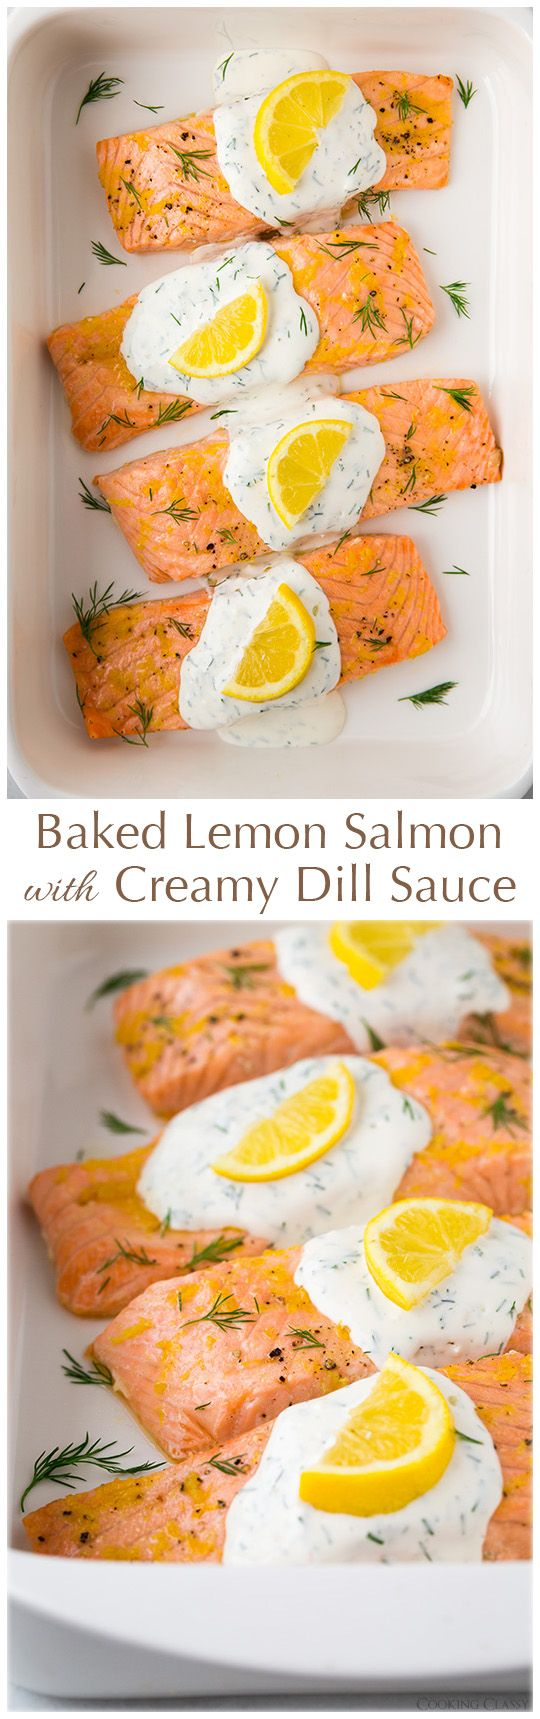 Baked Lemon Salmon with Creamy Dill Sauce - this salmon is AWESOME and ...